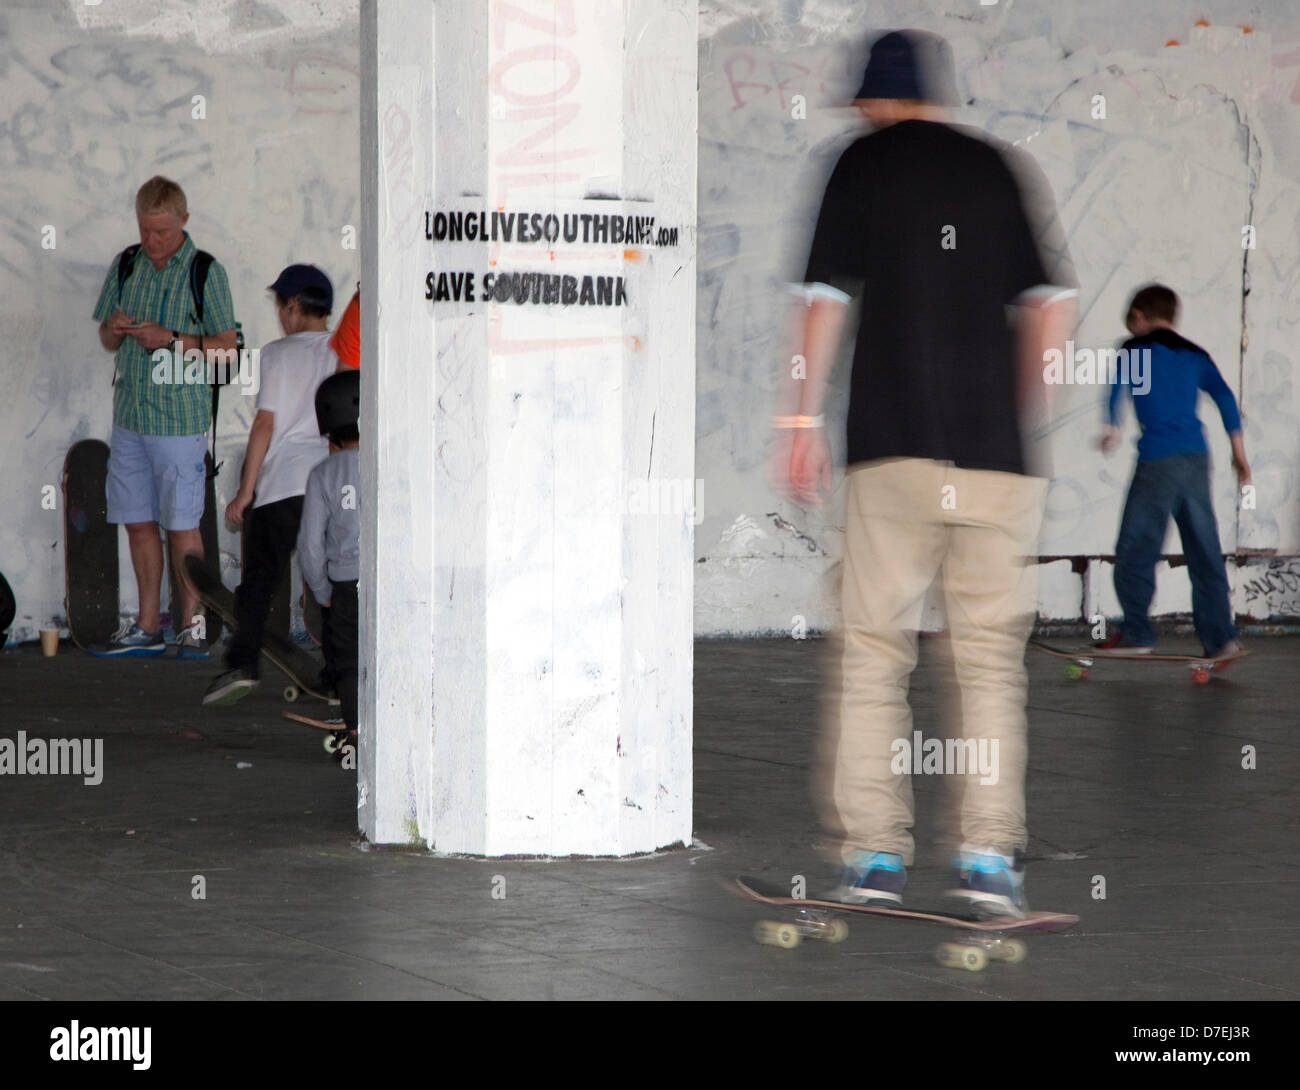 London, UK. 6th May 2013. The skateboarding park in the undercroft on London's South Bank arts centre is threatened - Stock Image